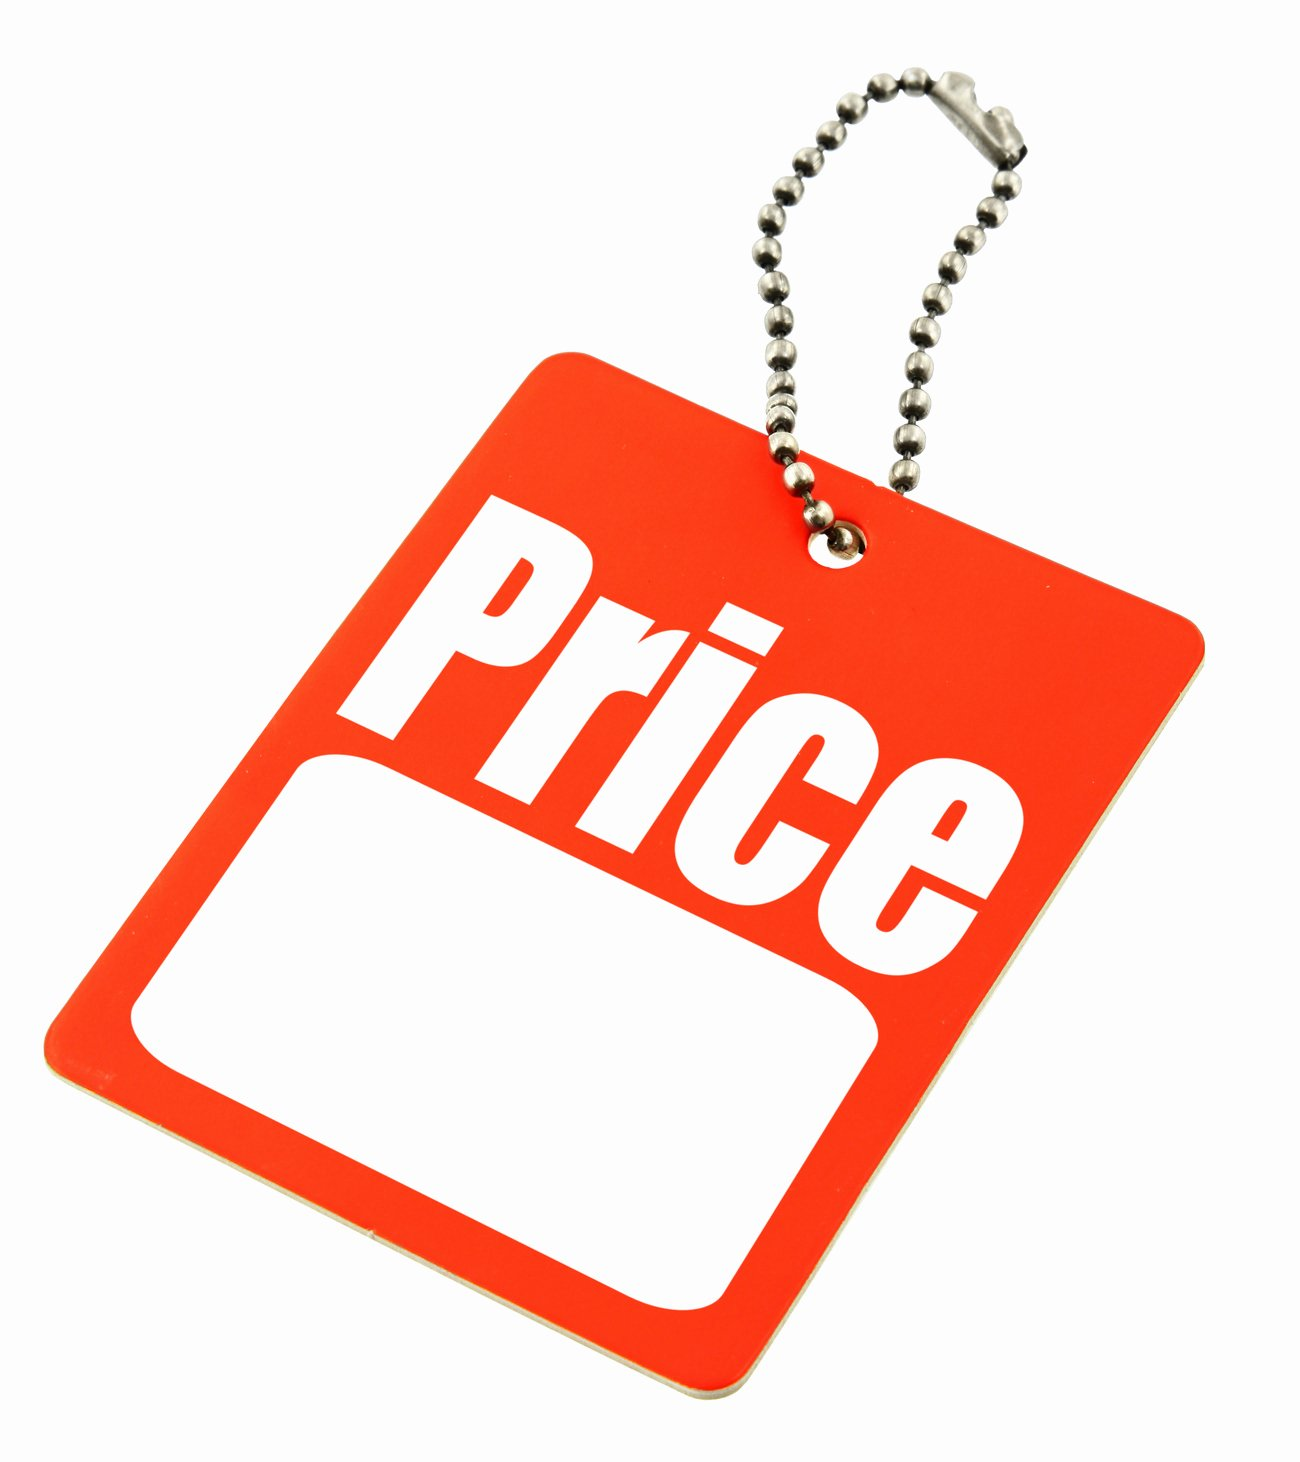 Price Tag Templates Printable Lovely Price Tag Template Clipart Best